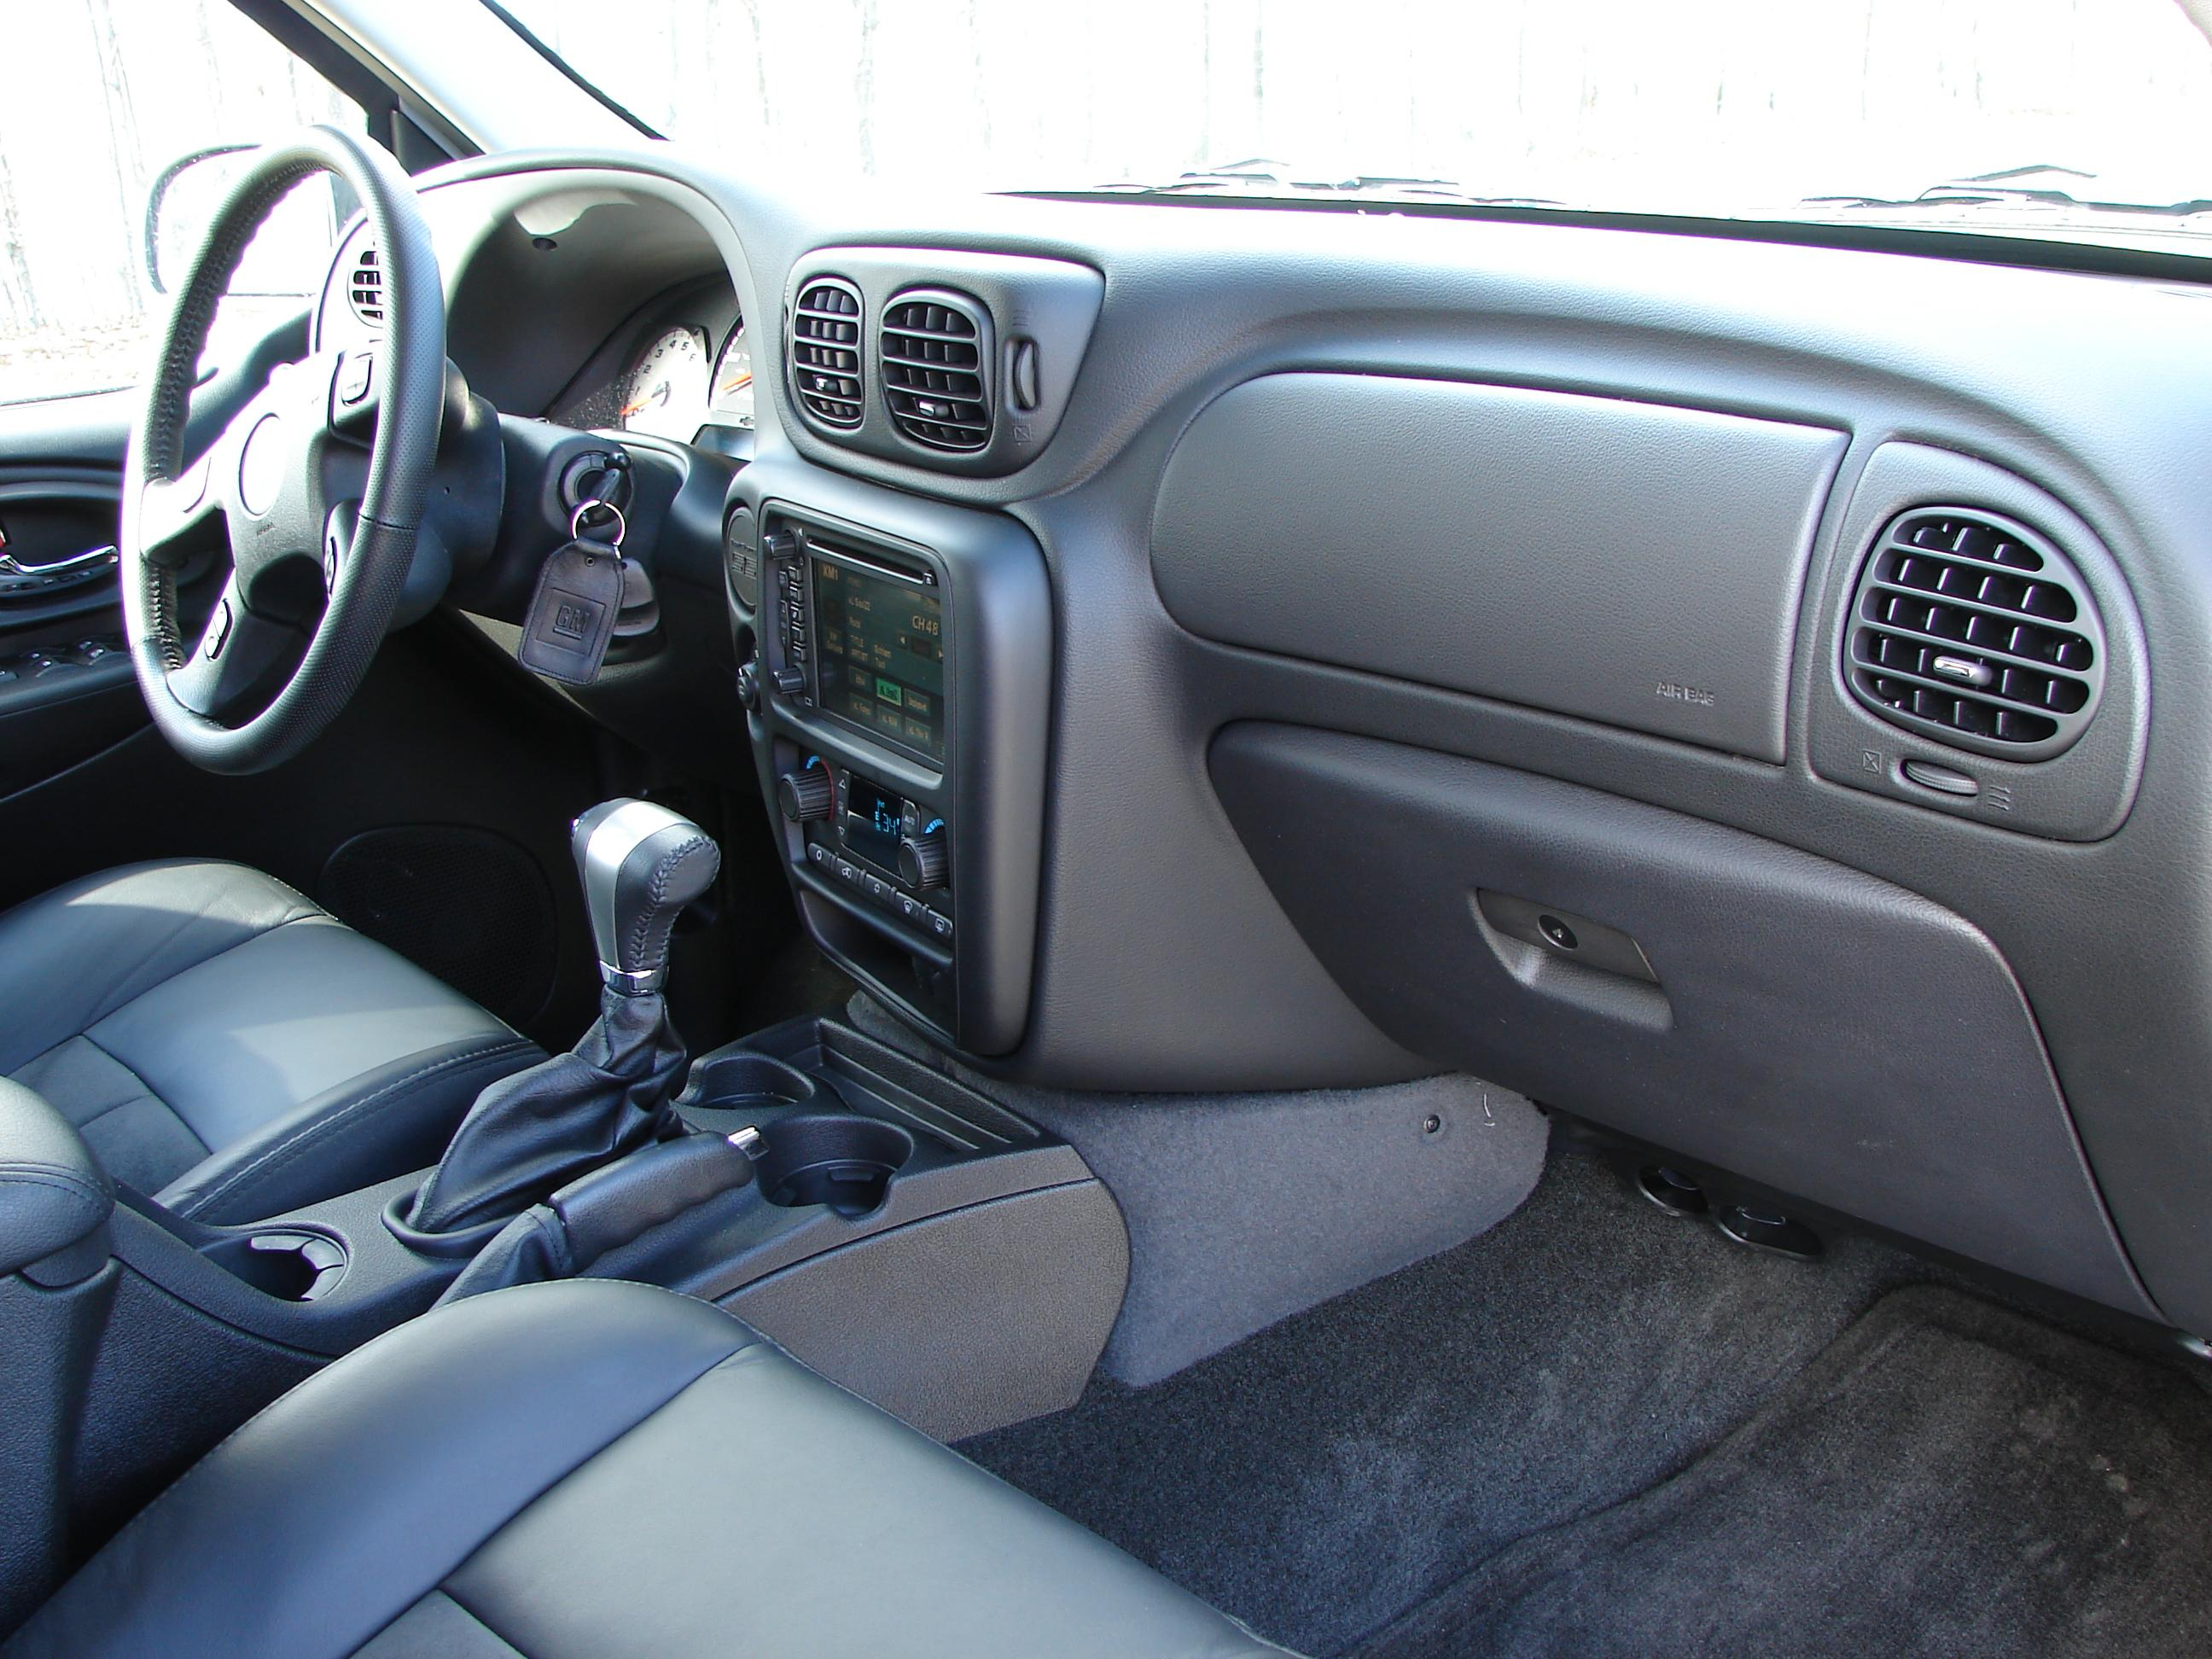 Chevrolet Blazer interior #4